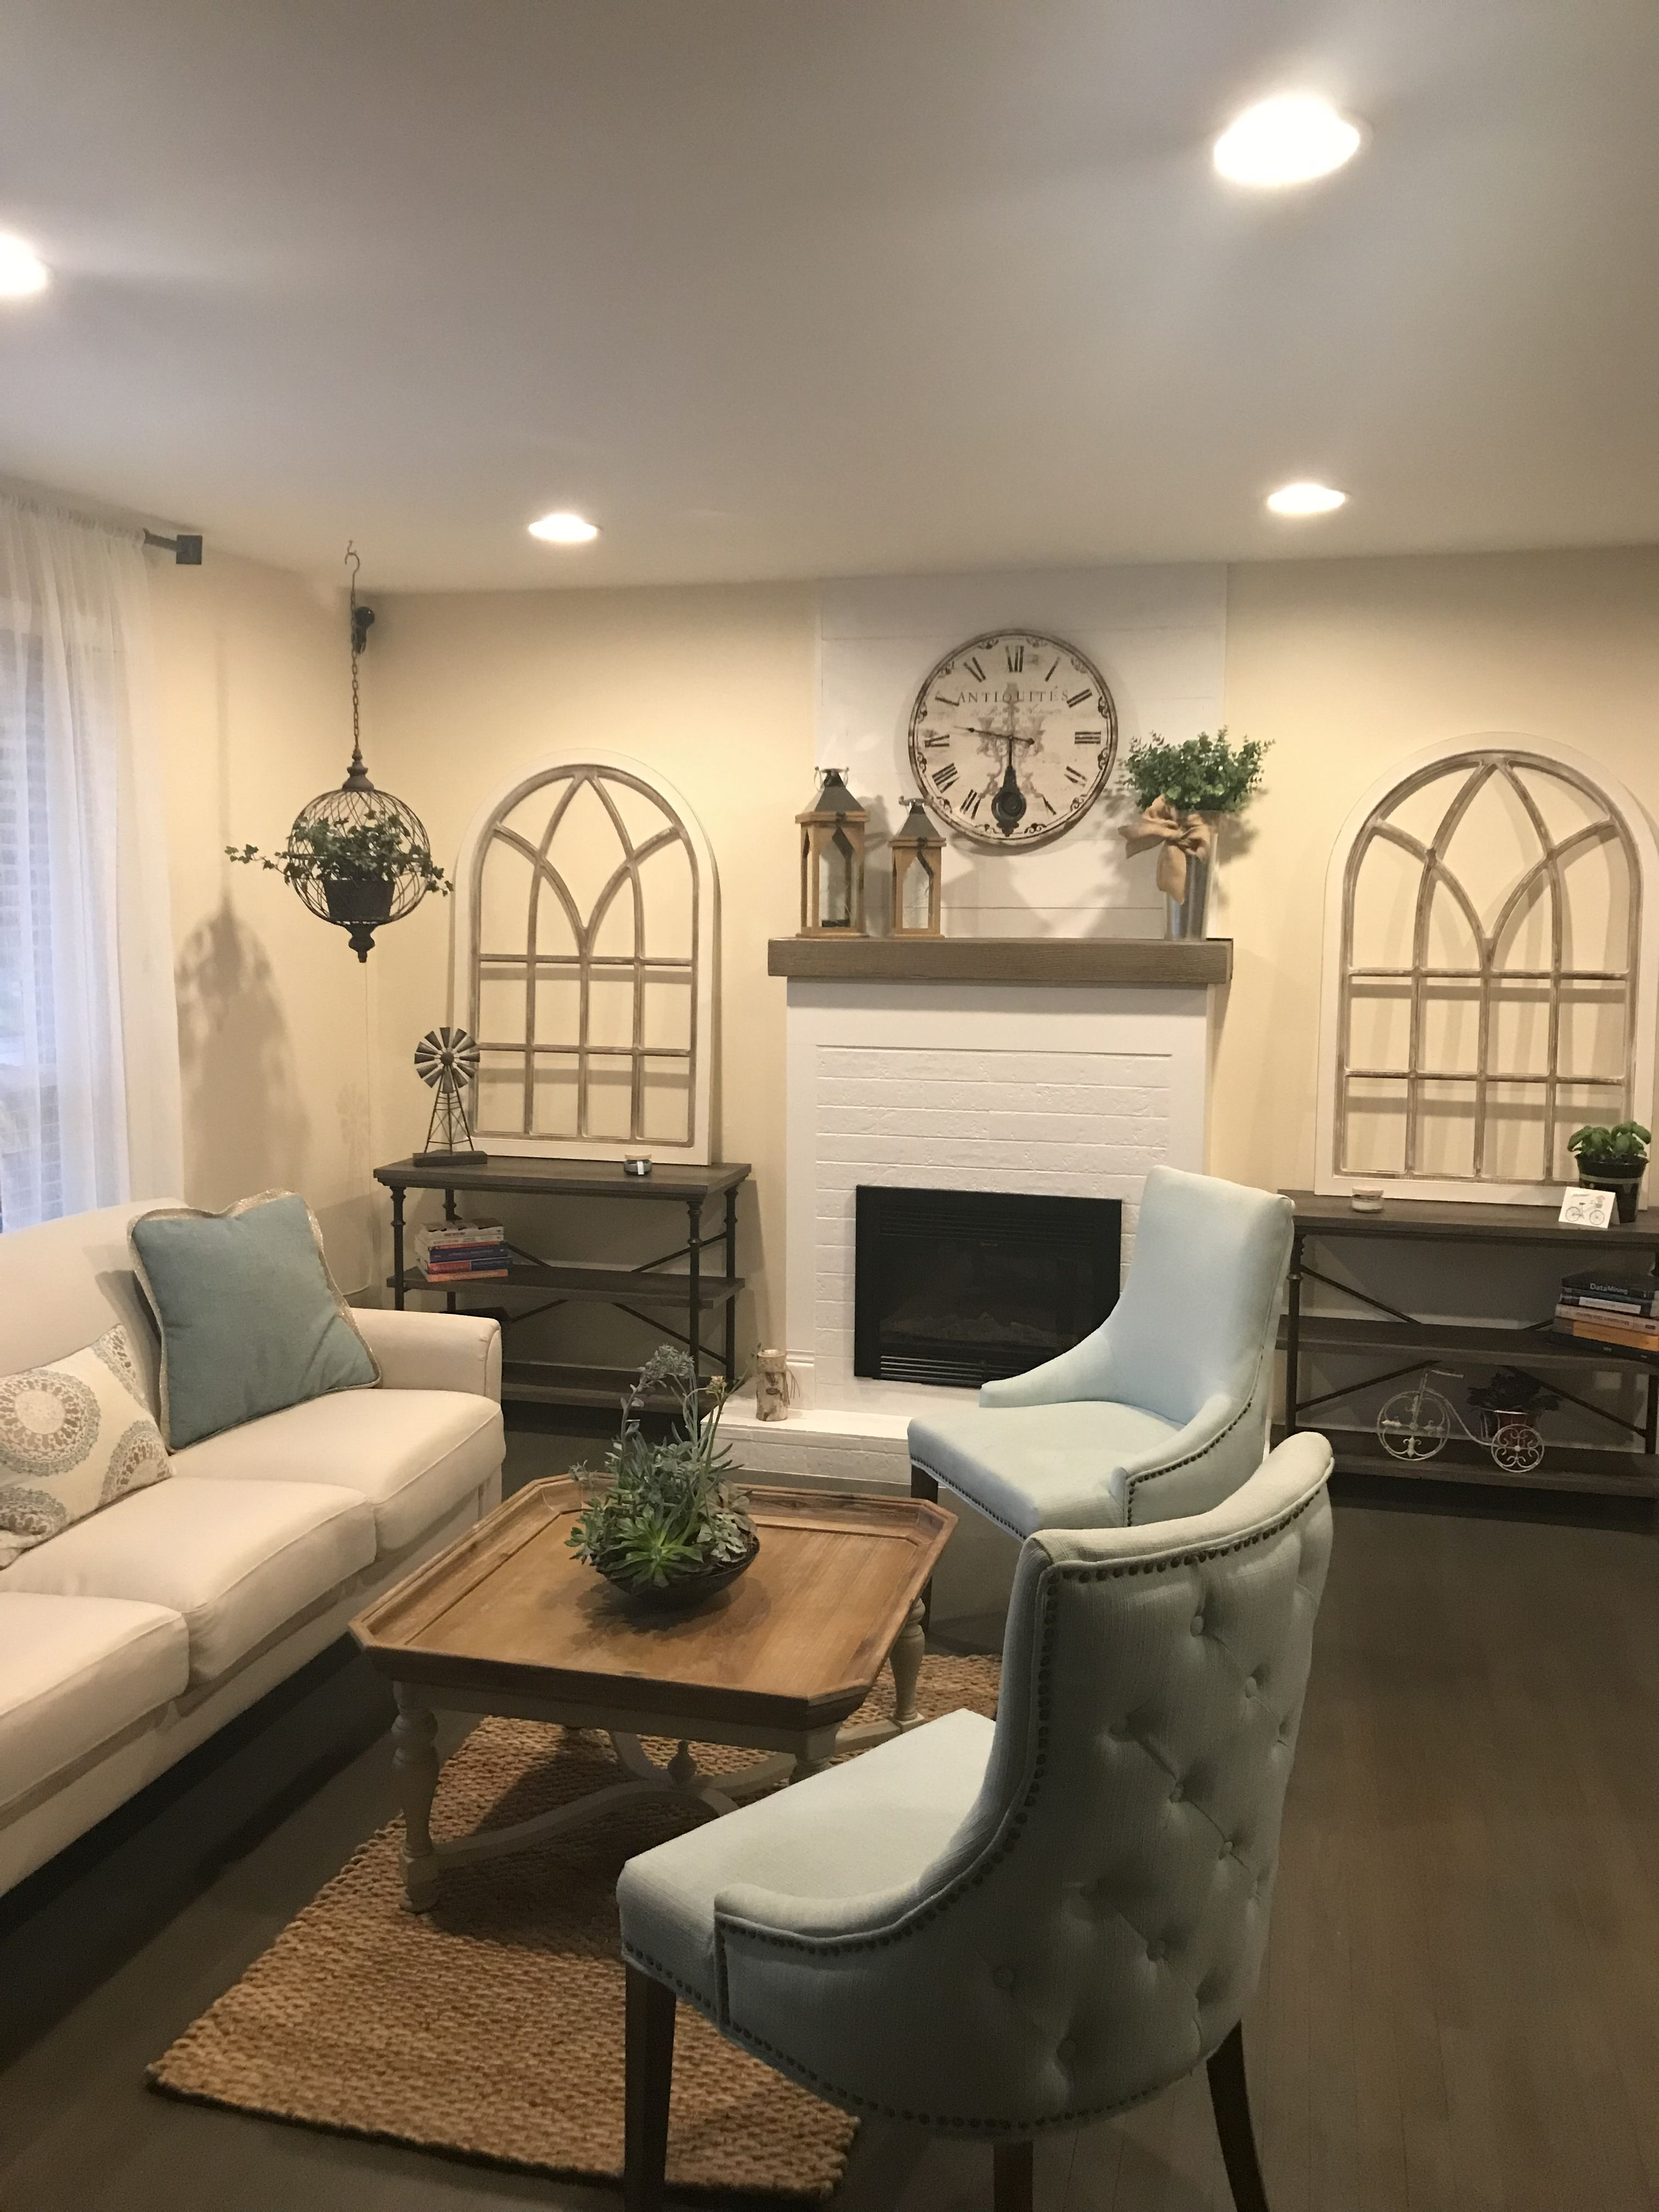 Ivory Arch Wall Decor Faux fireplace ideas in 2019